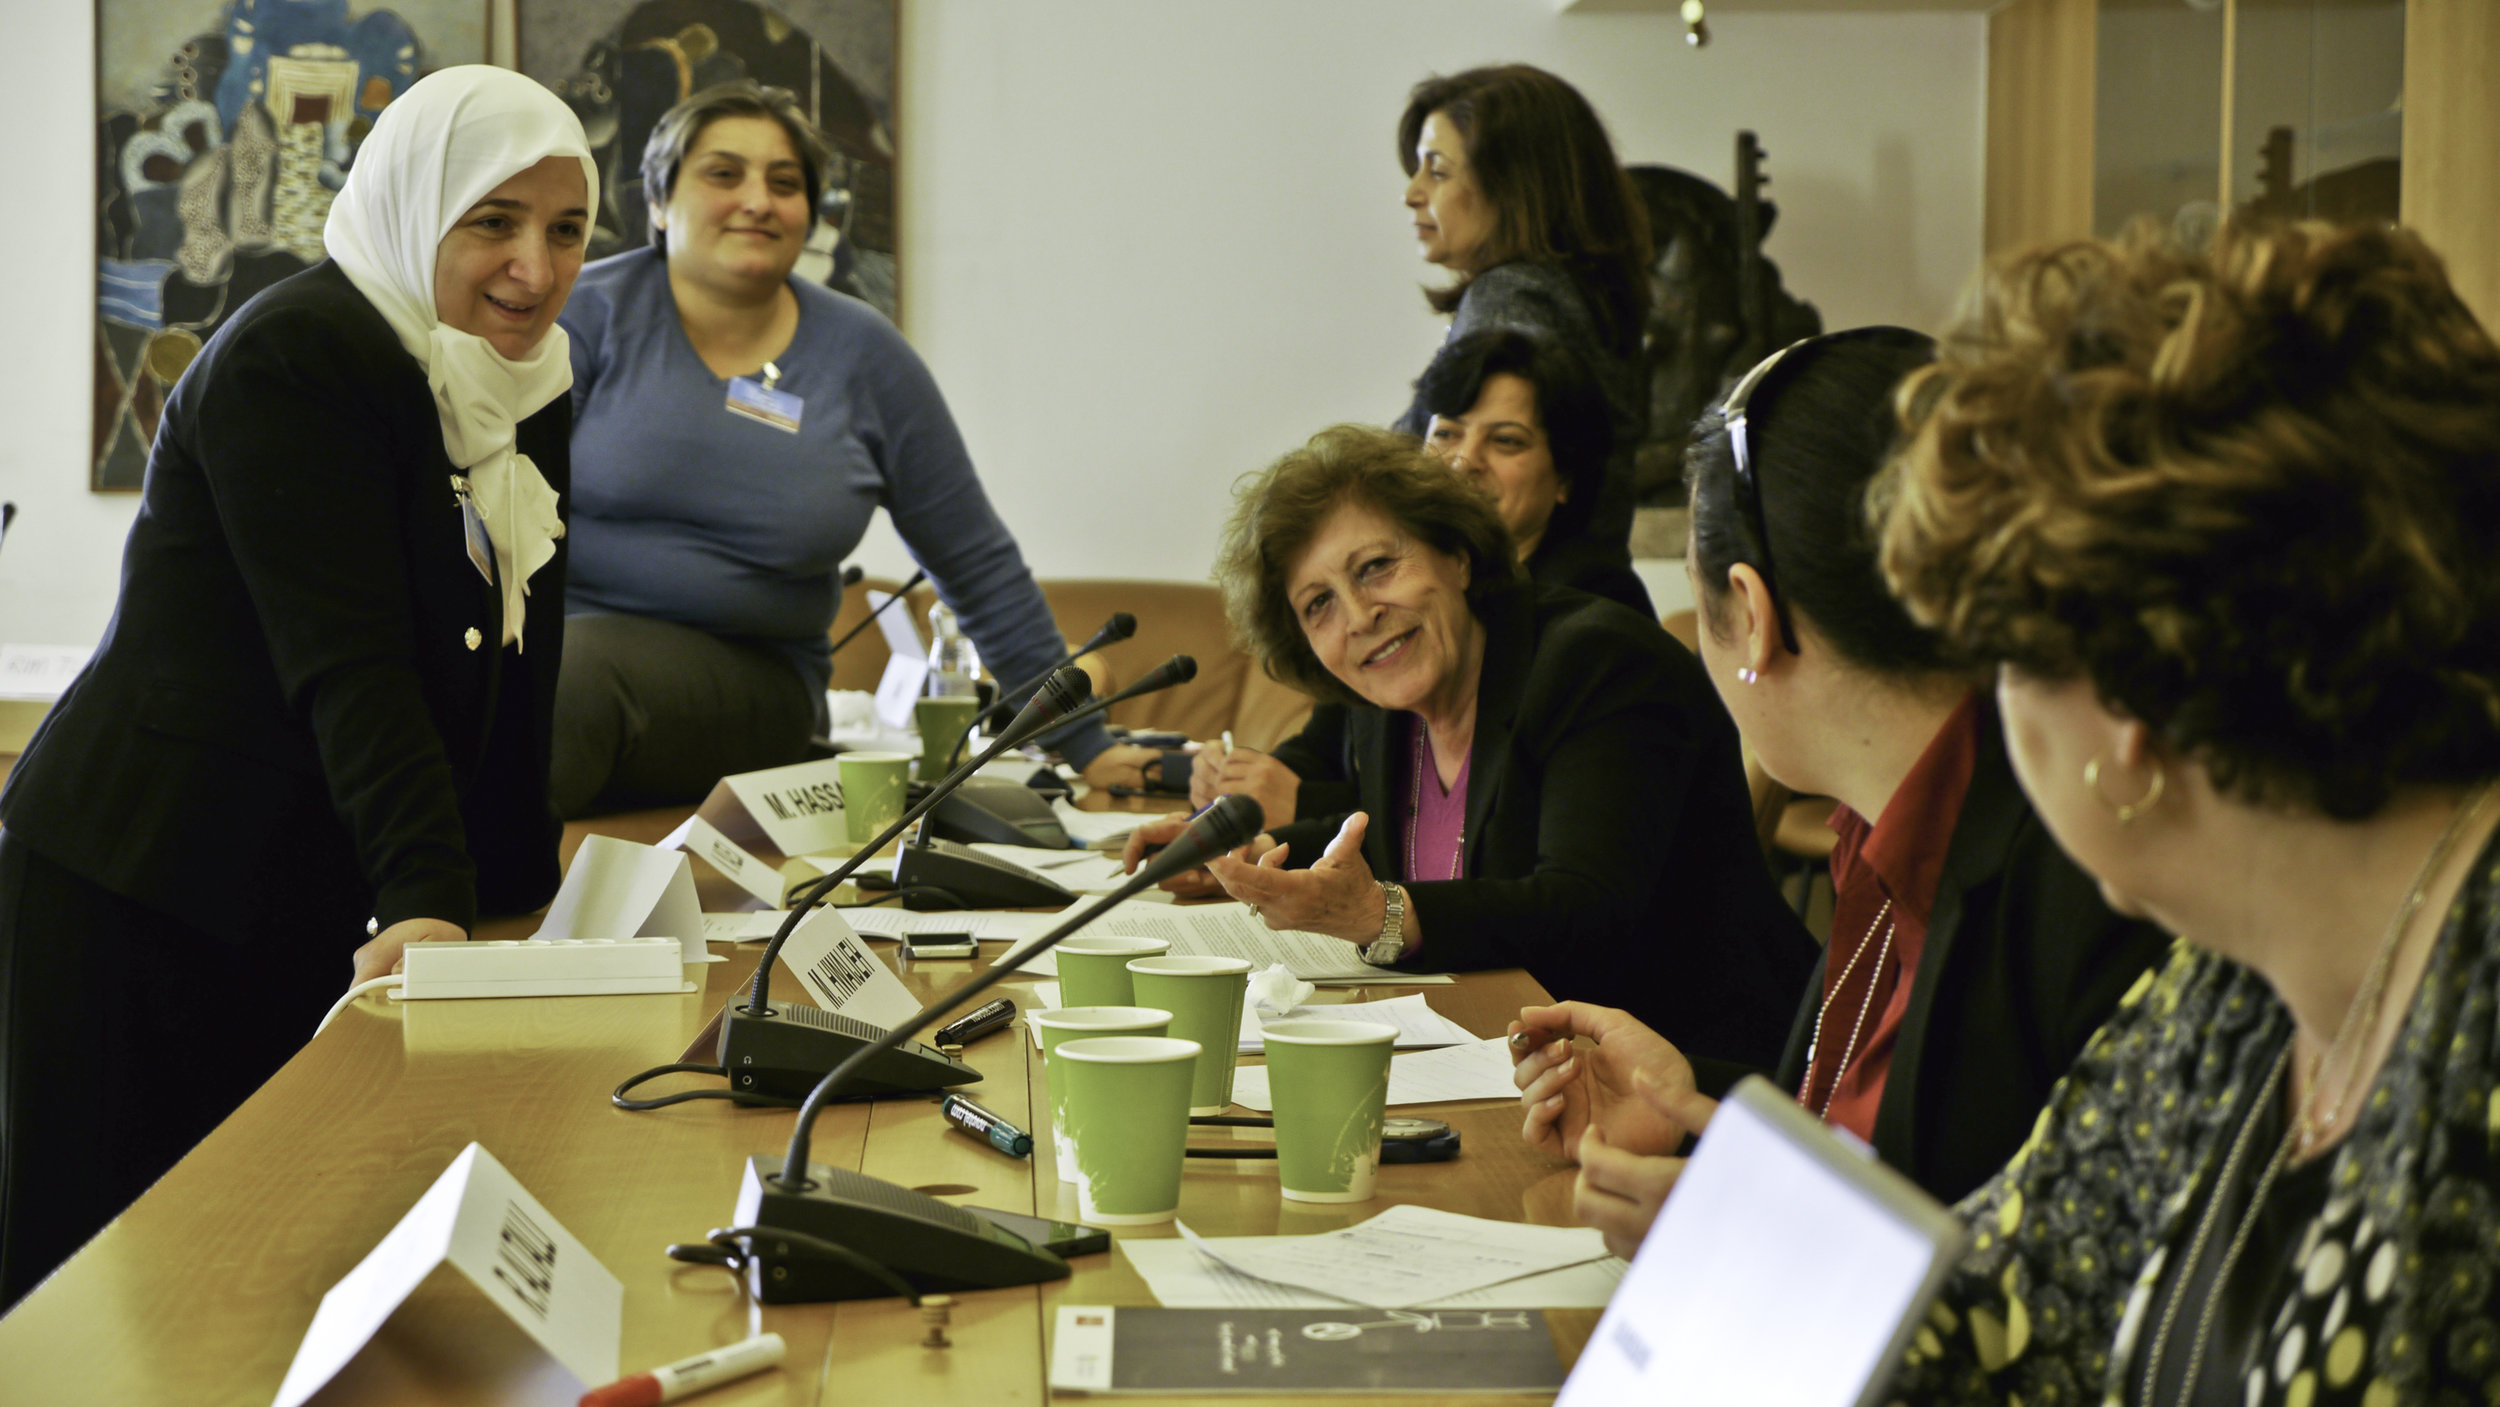 Syrian Women at the UN Peace Talks - PassBlue.com, May 2016